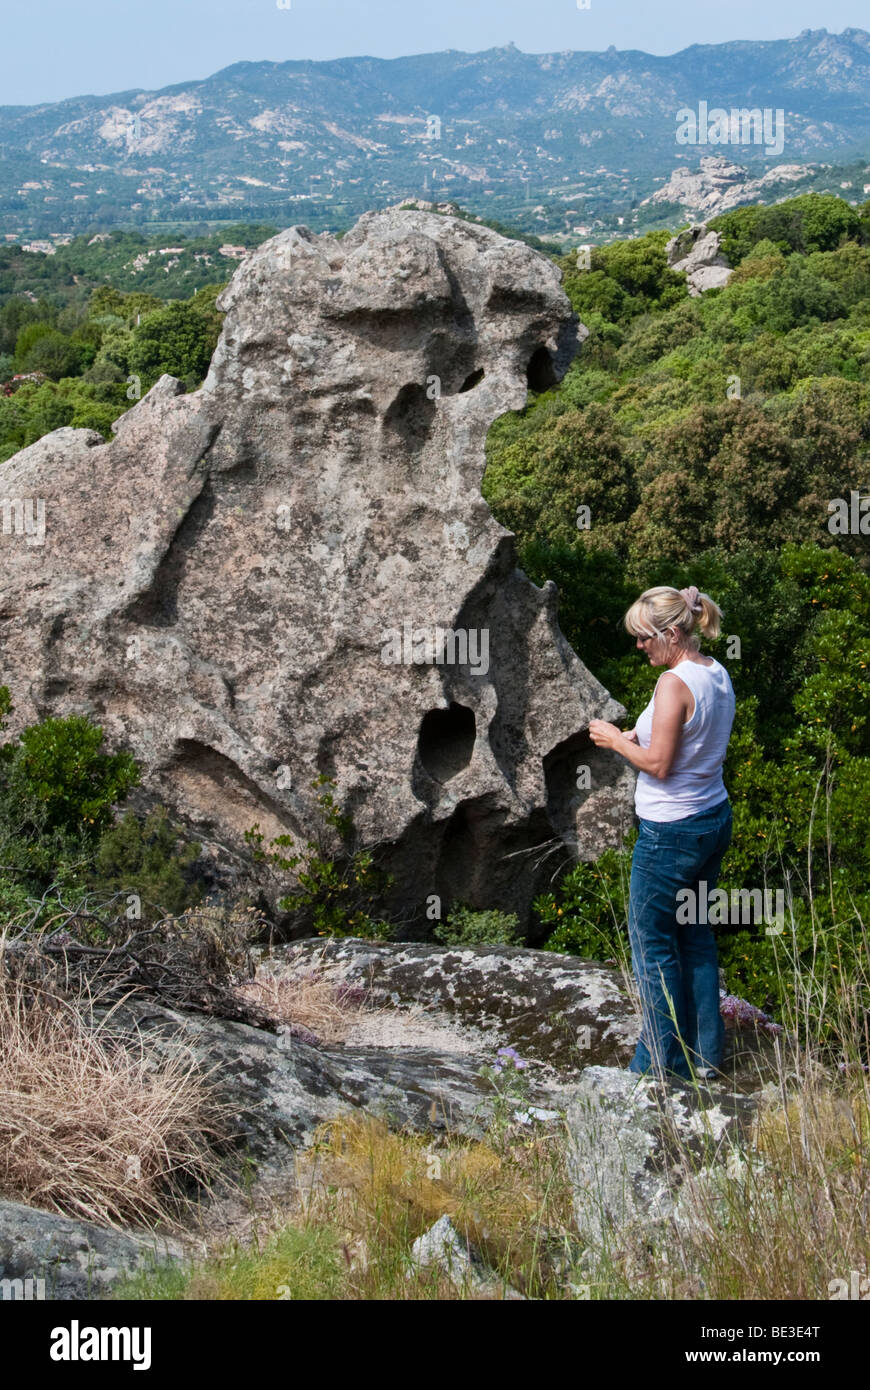 Tourist taking a photograph close to a jagged rock in northern Sardinia, Italy - Stock Image